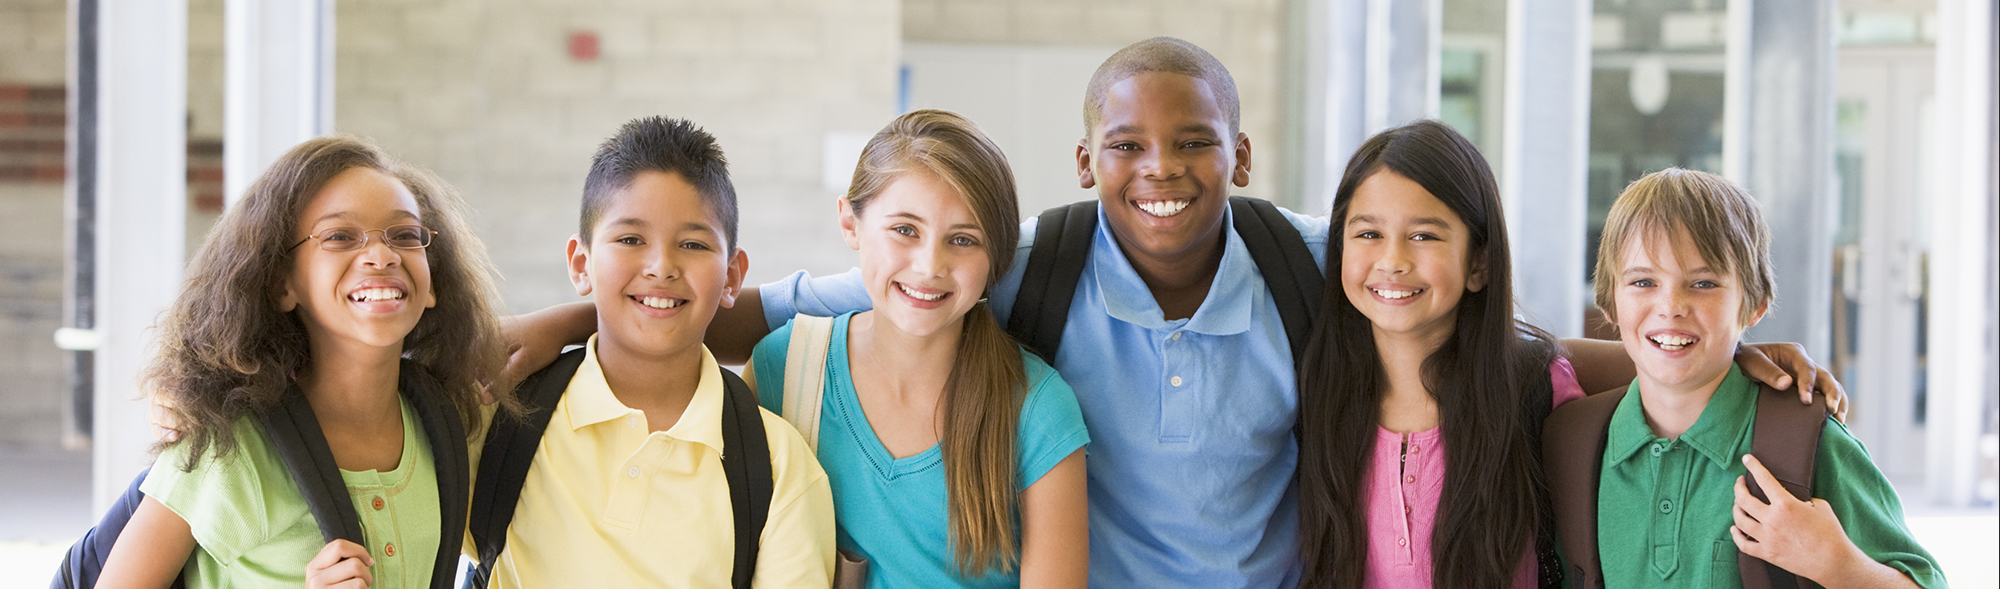 students with backpacks standing with arms around each other